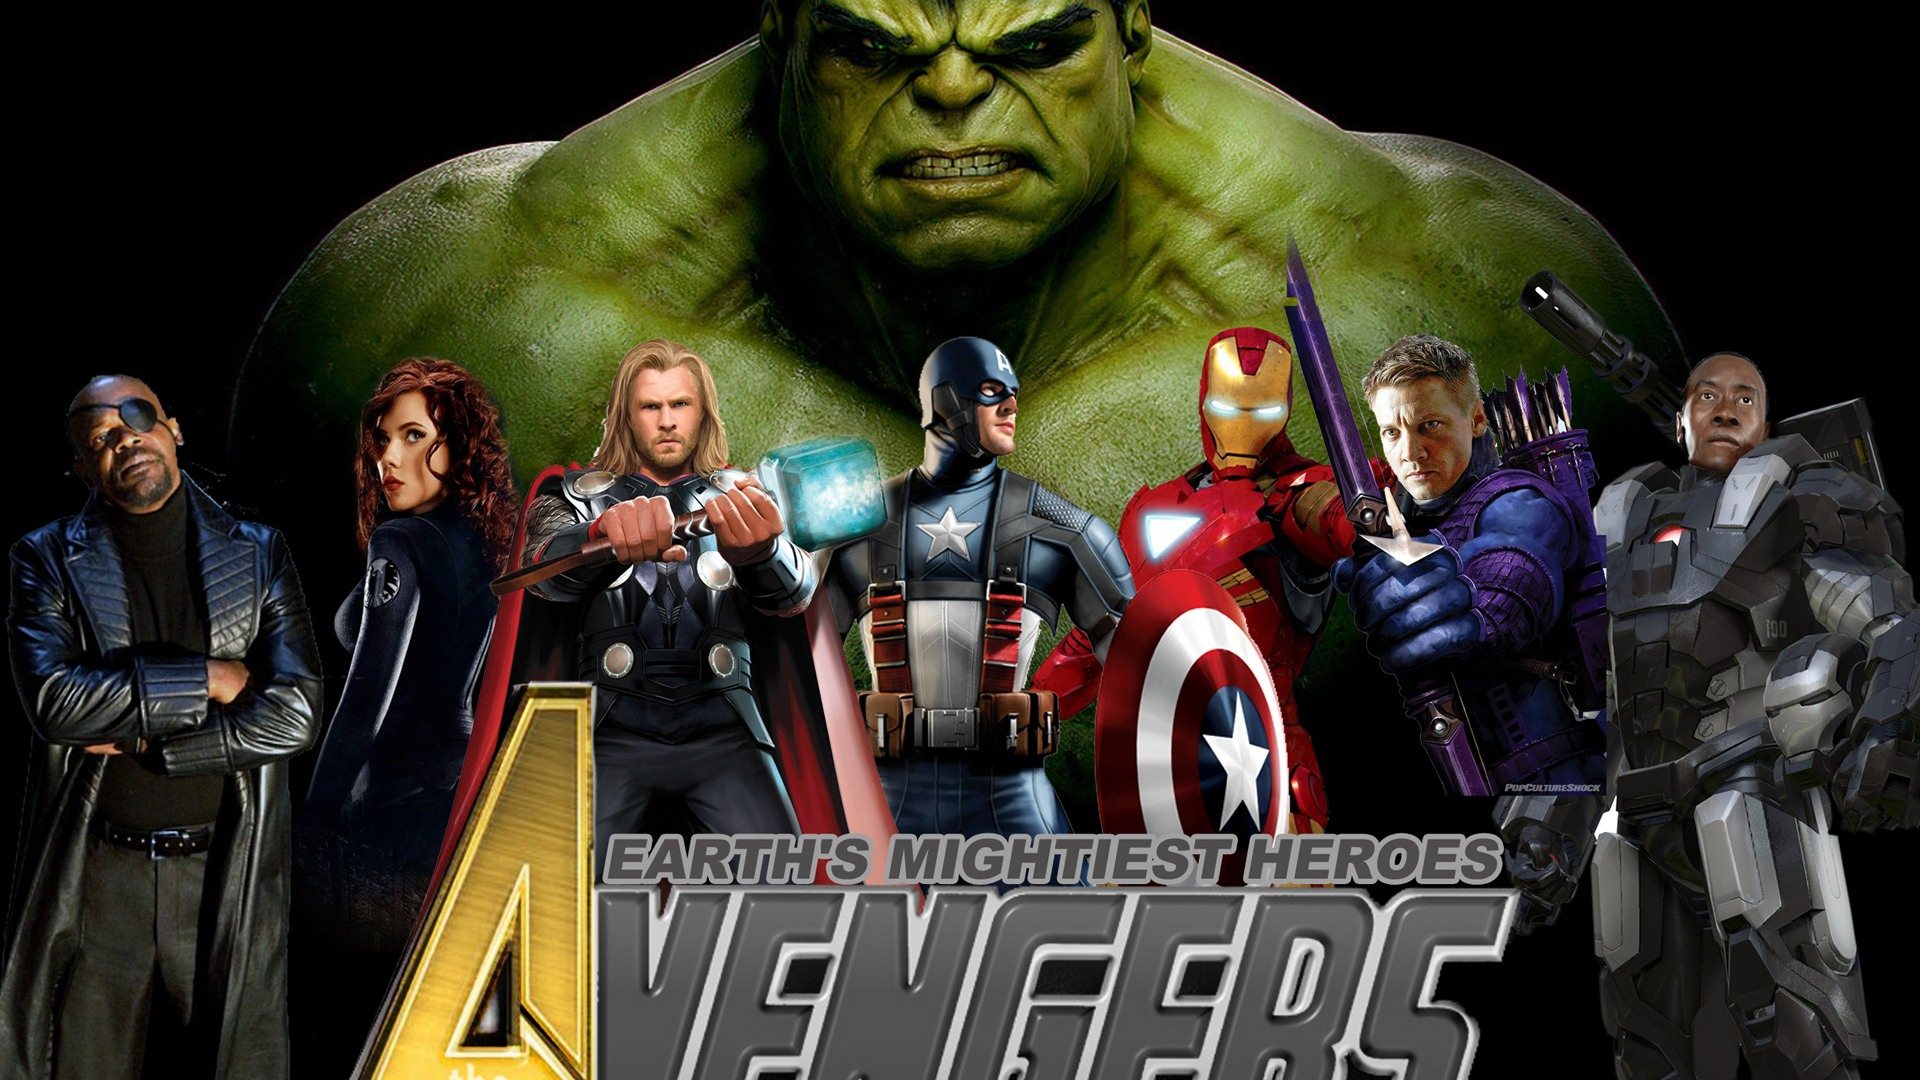 The Avengers Wallpapers For Desktop 1920x1080 Movie 1920x1080